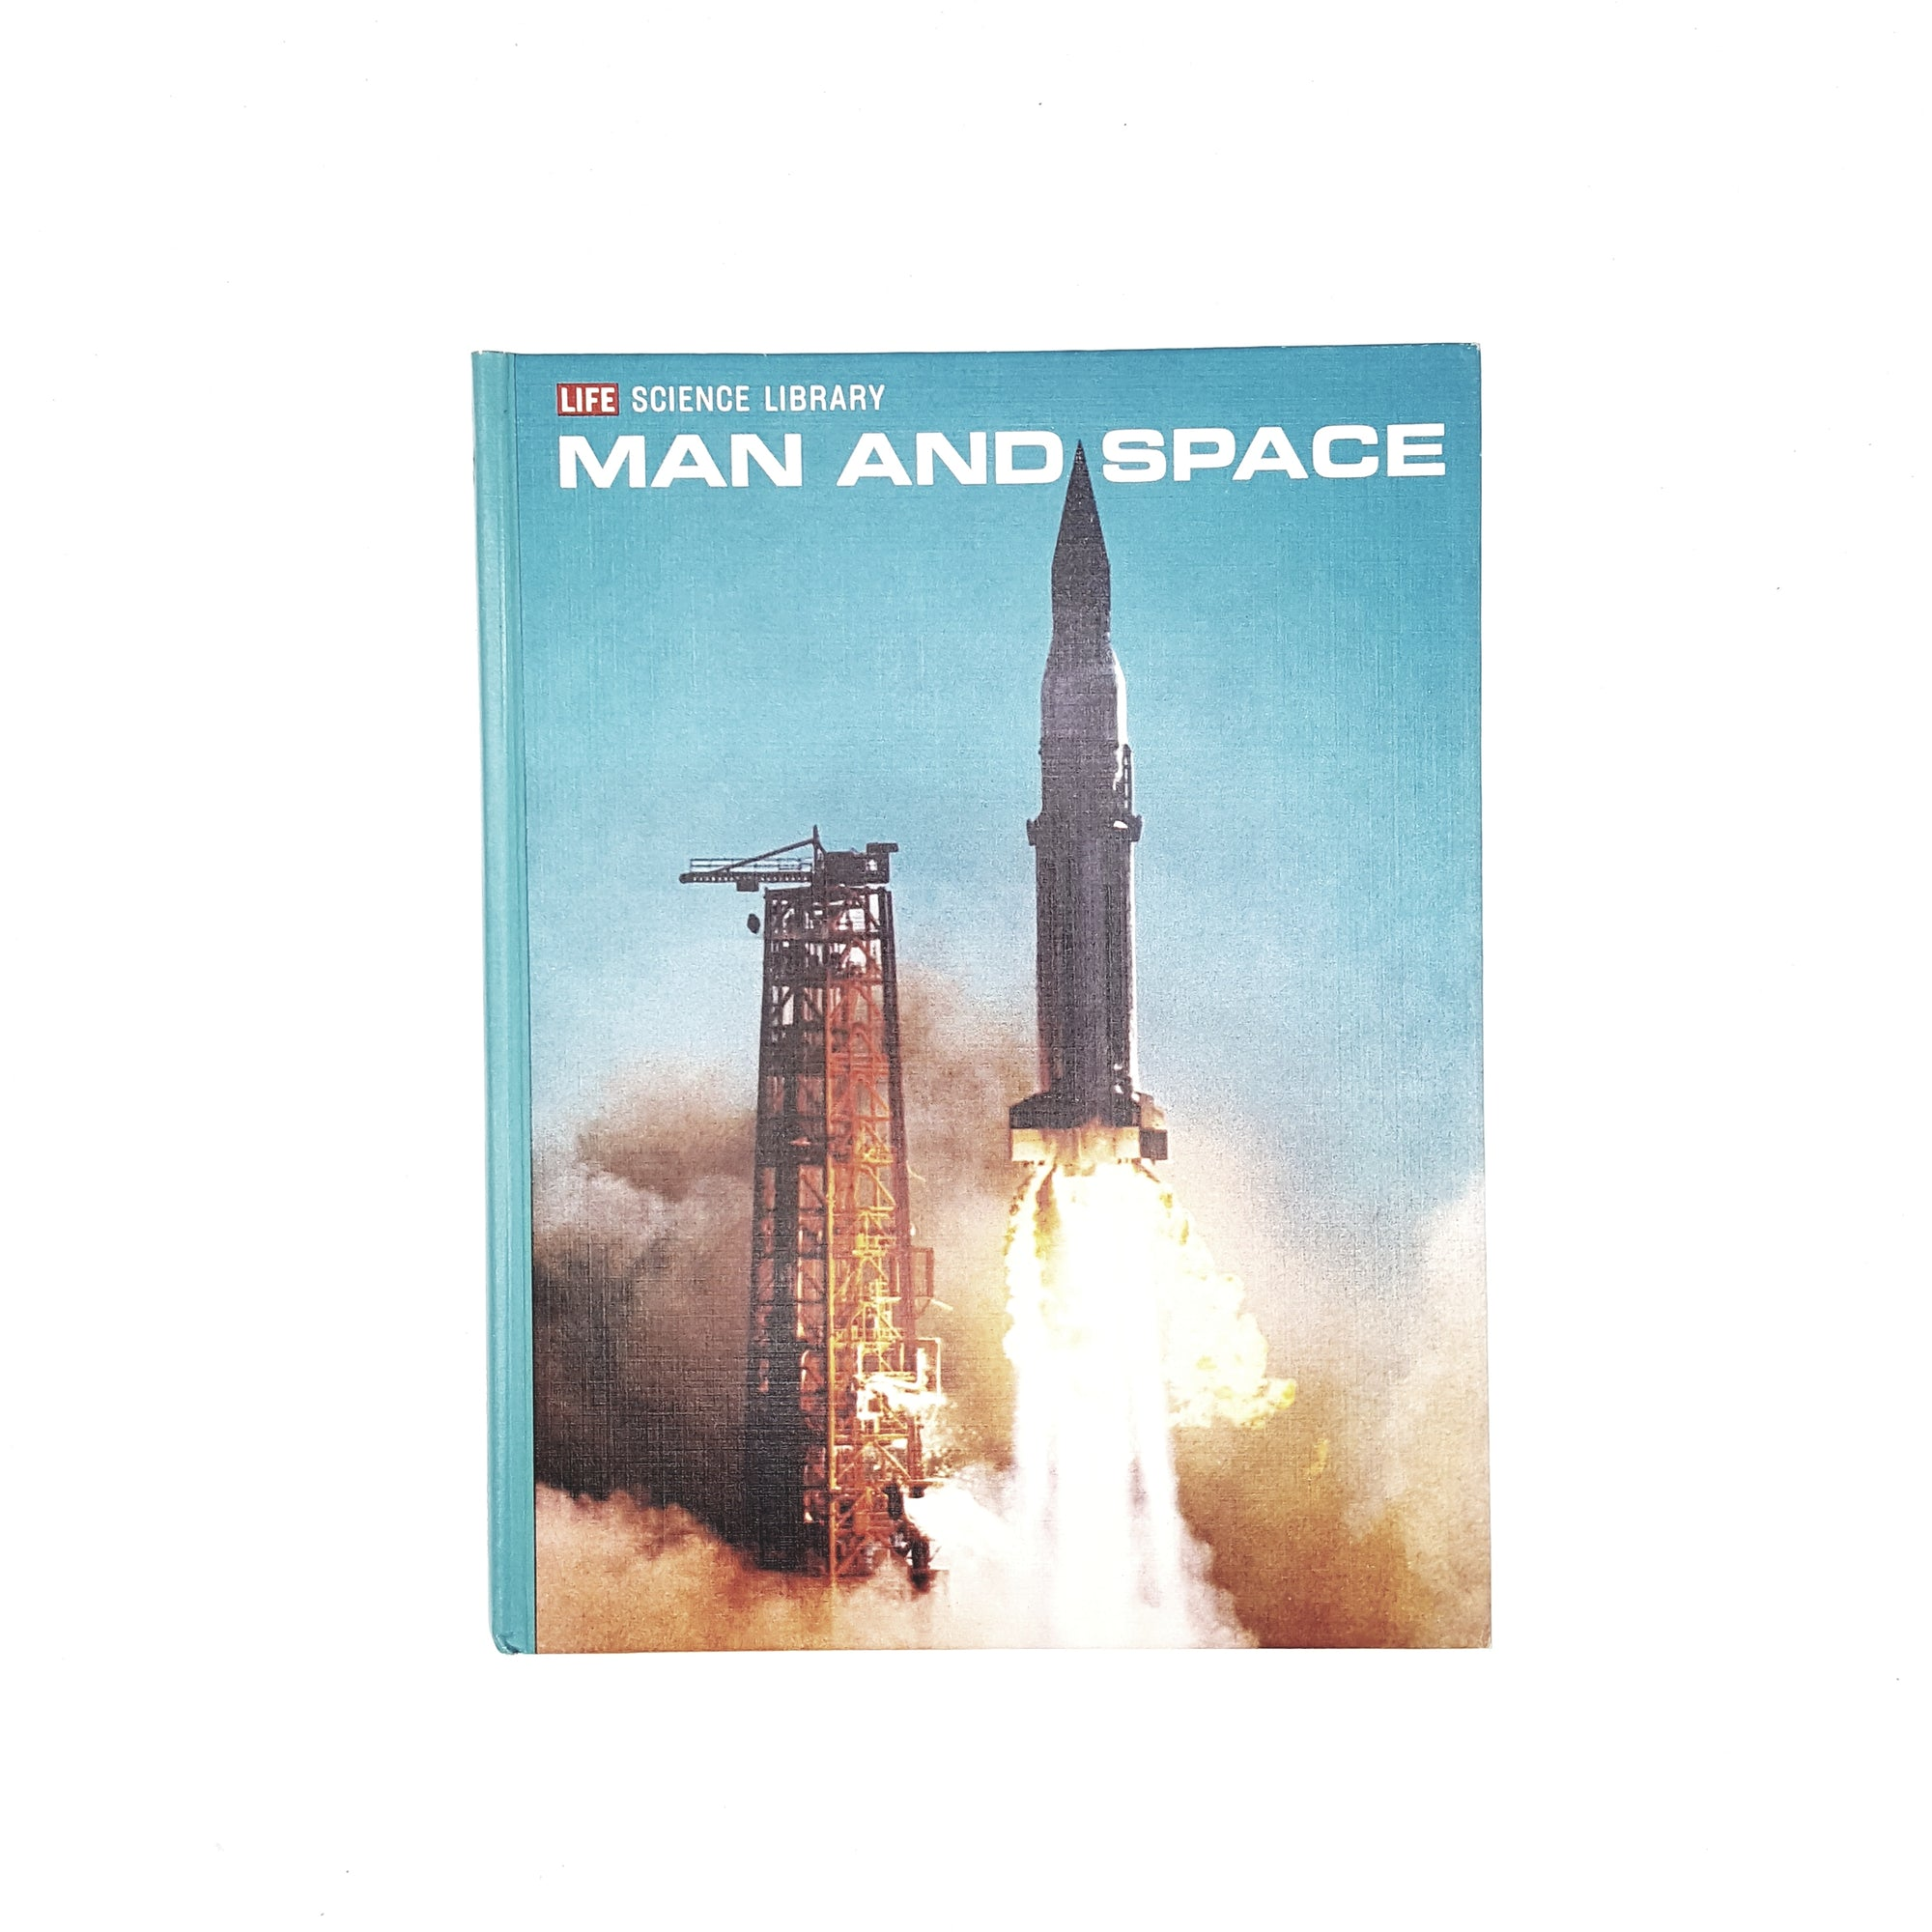 Life Science Library: Man and Space 1971